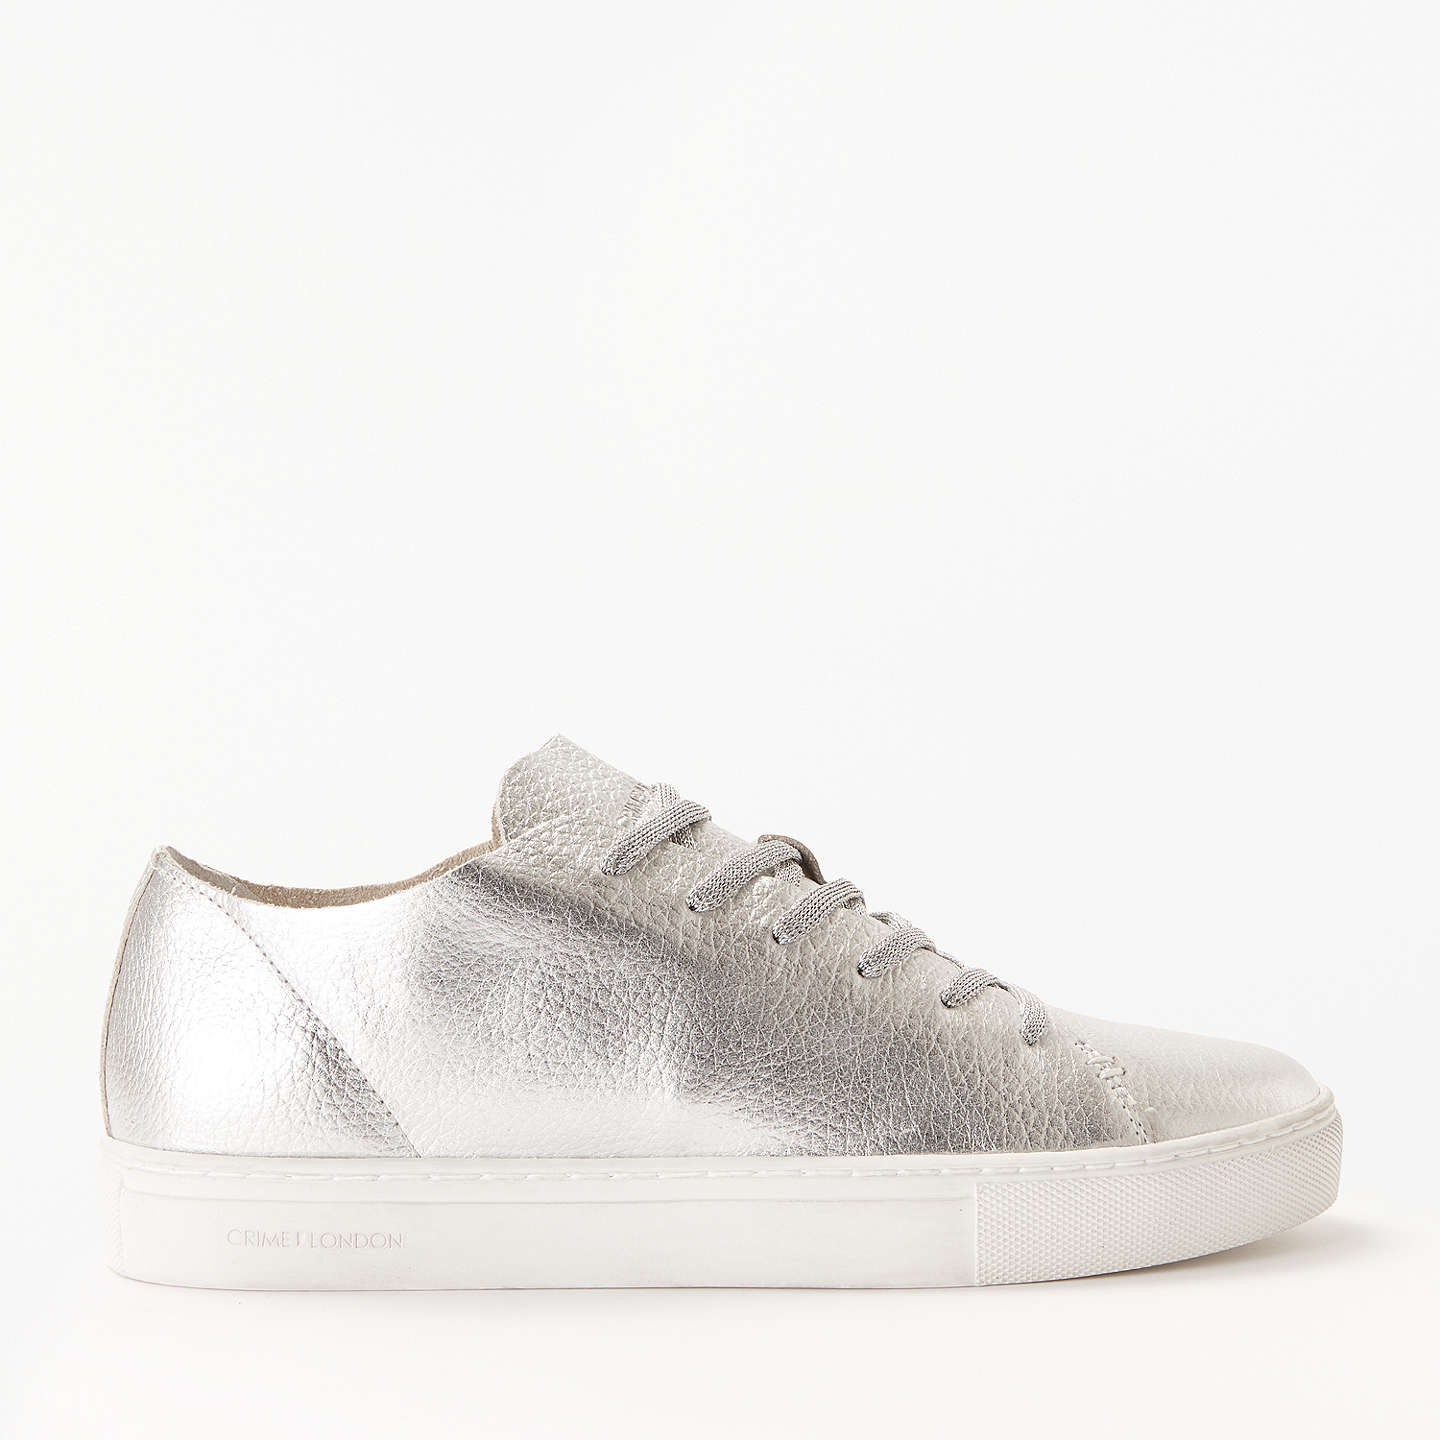 Crime London RAW LO SUEDE SNEAKERS